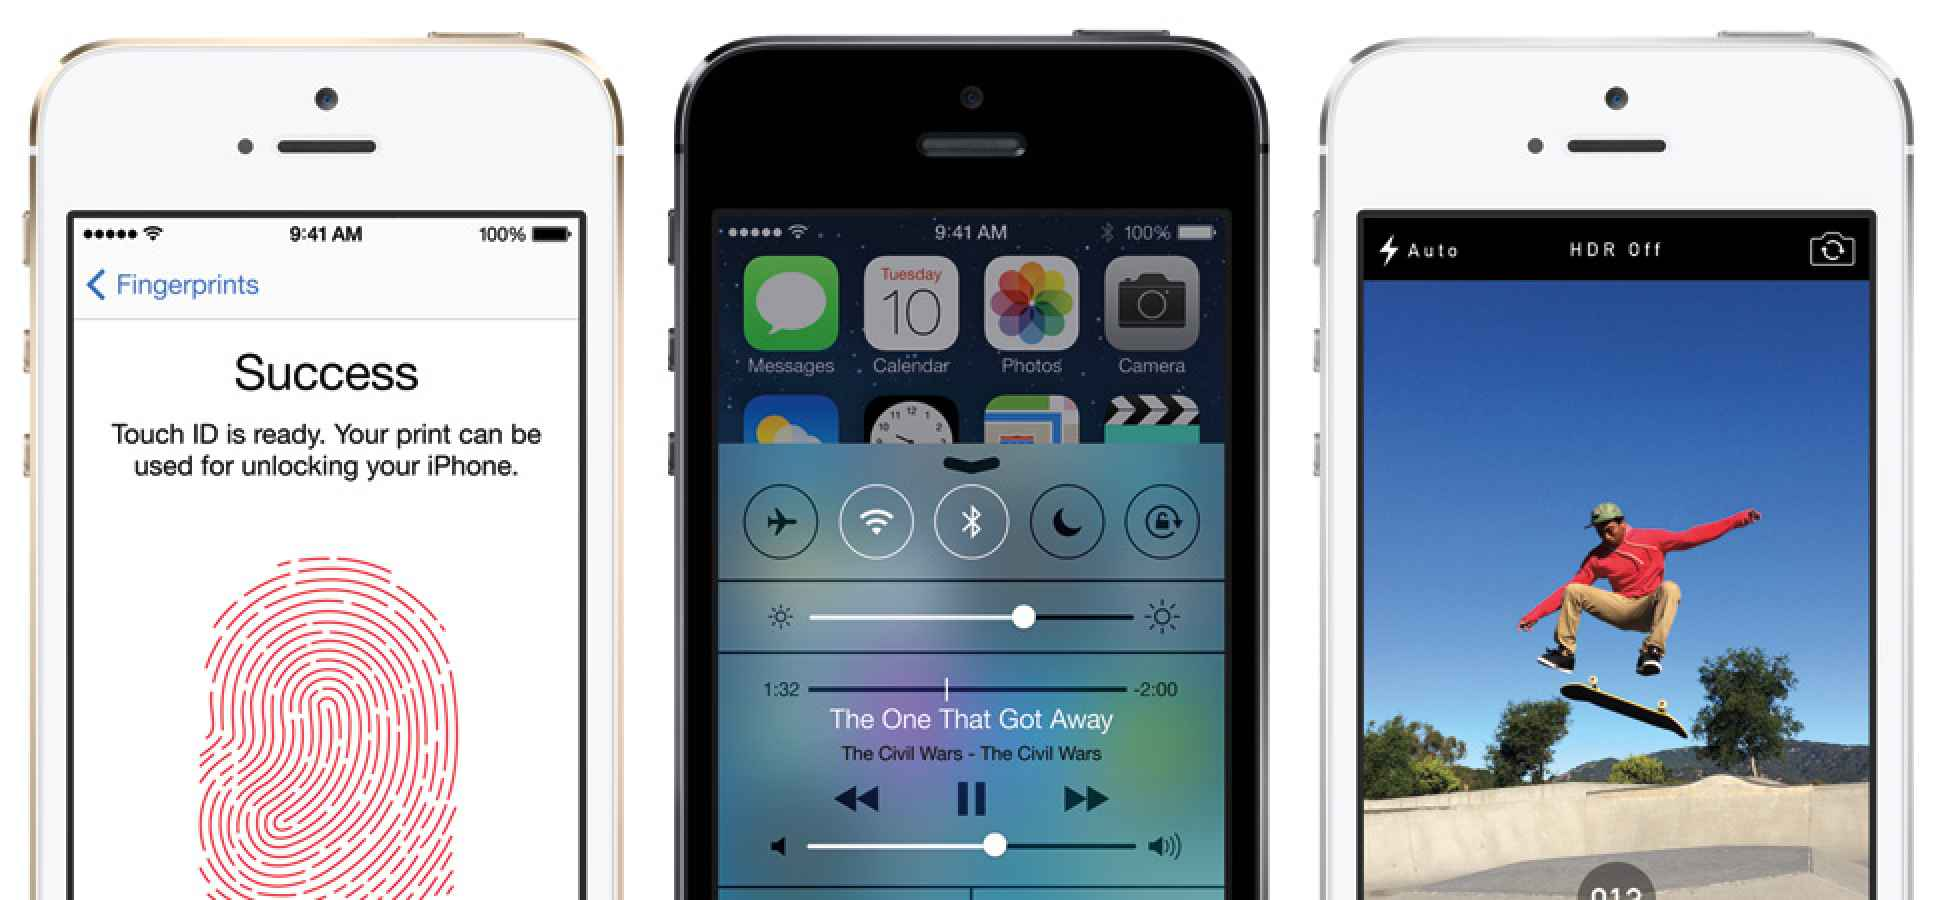 iPhone Users Experience Separation Anxiety, Study Shows